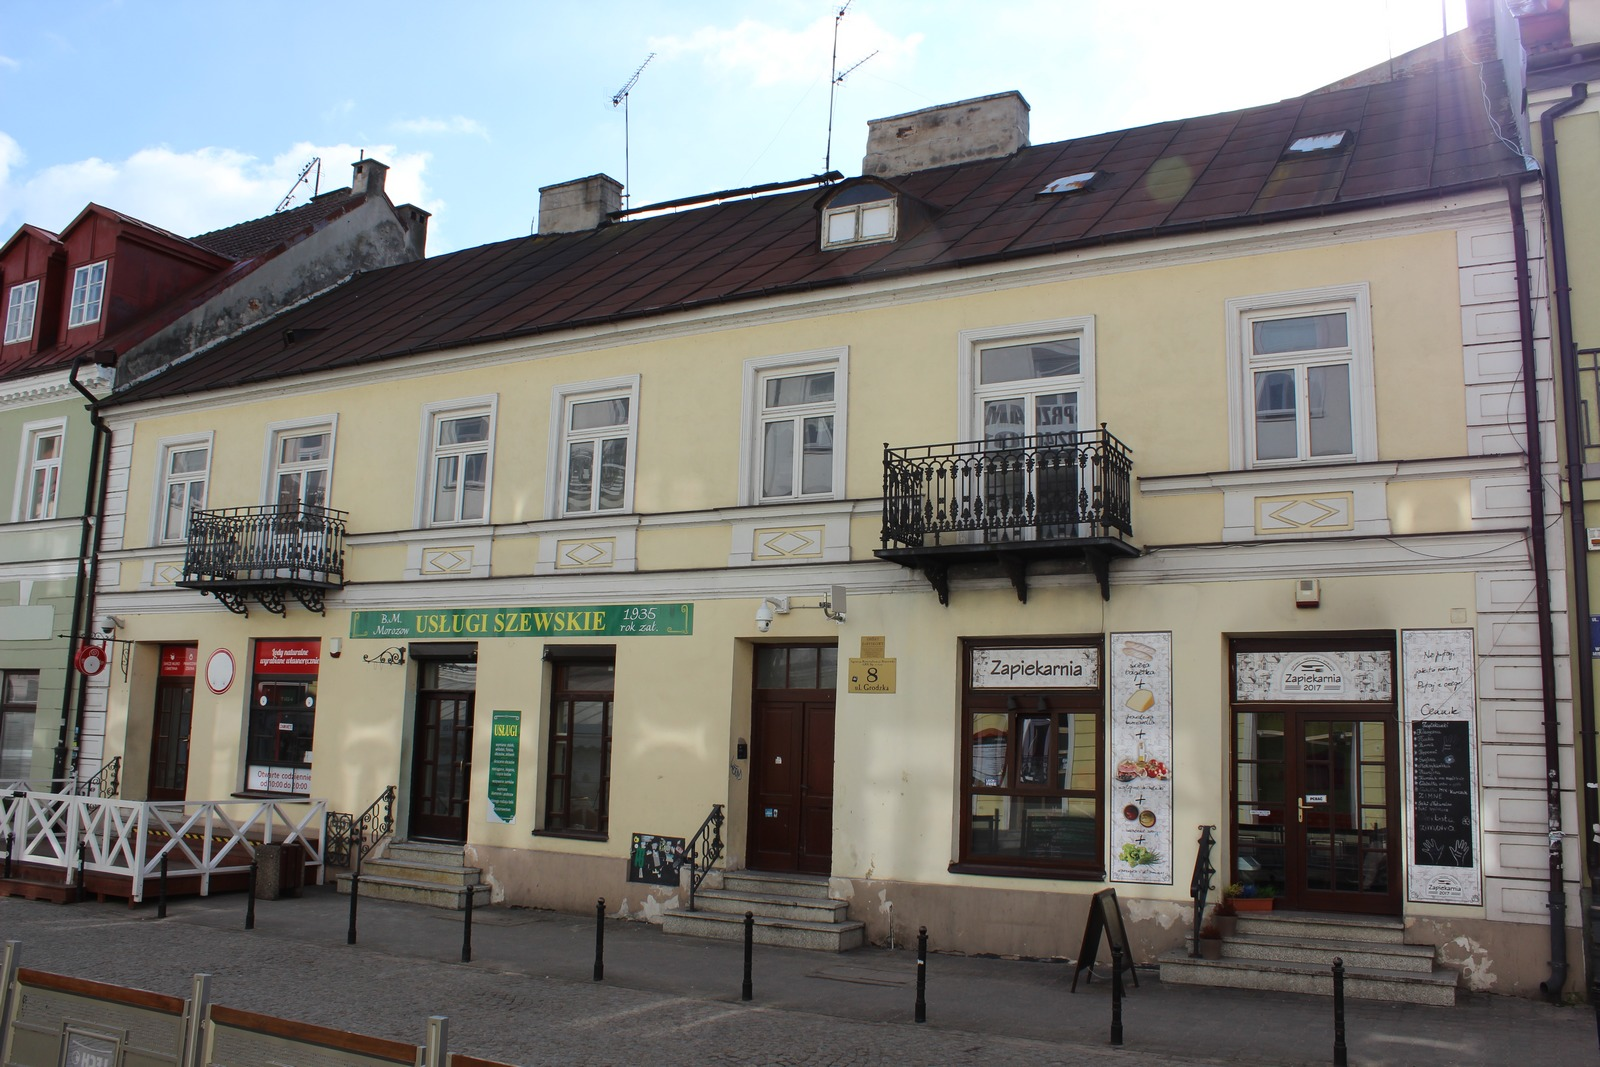 The history of the property at 8 Grodzka Street in Płock